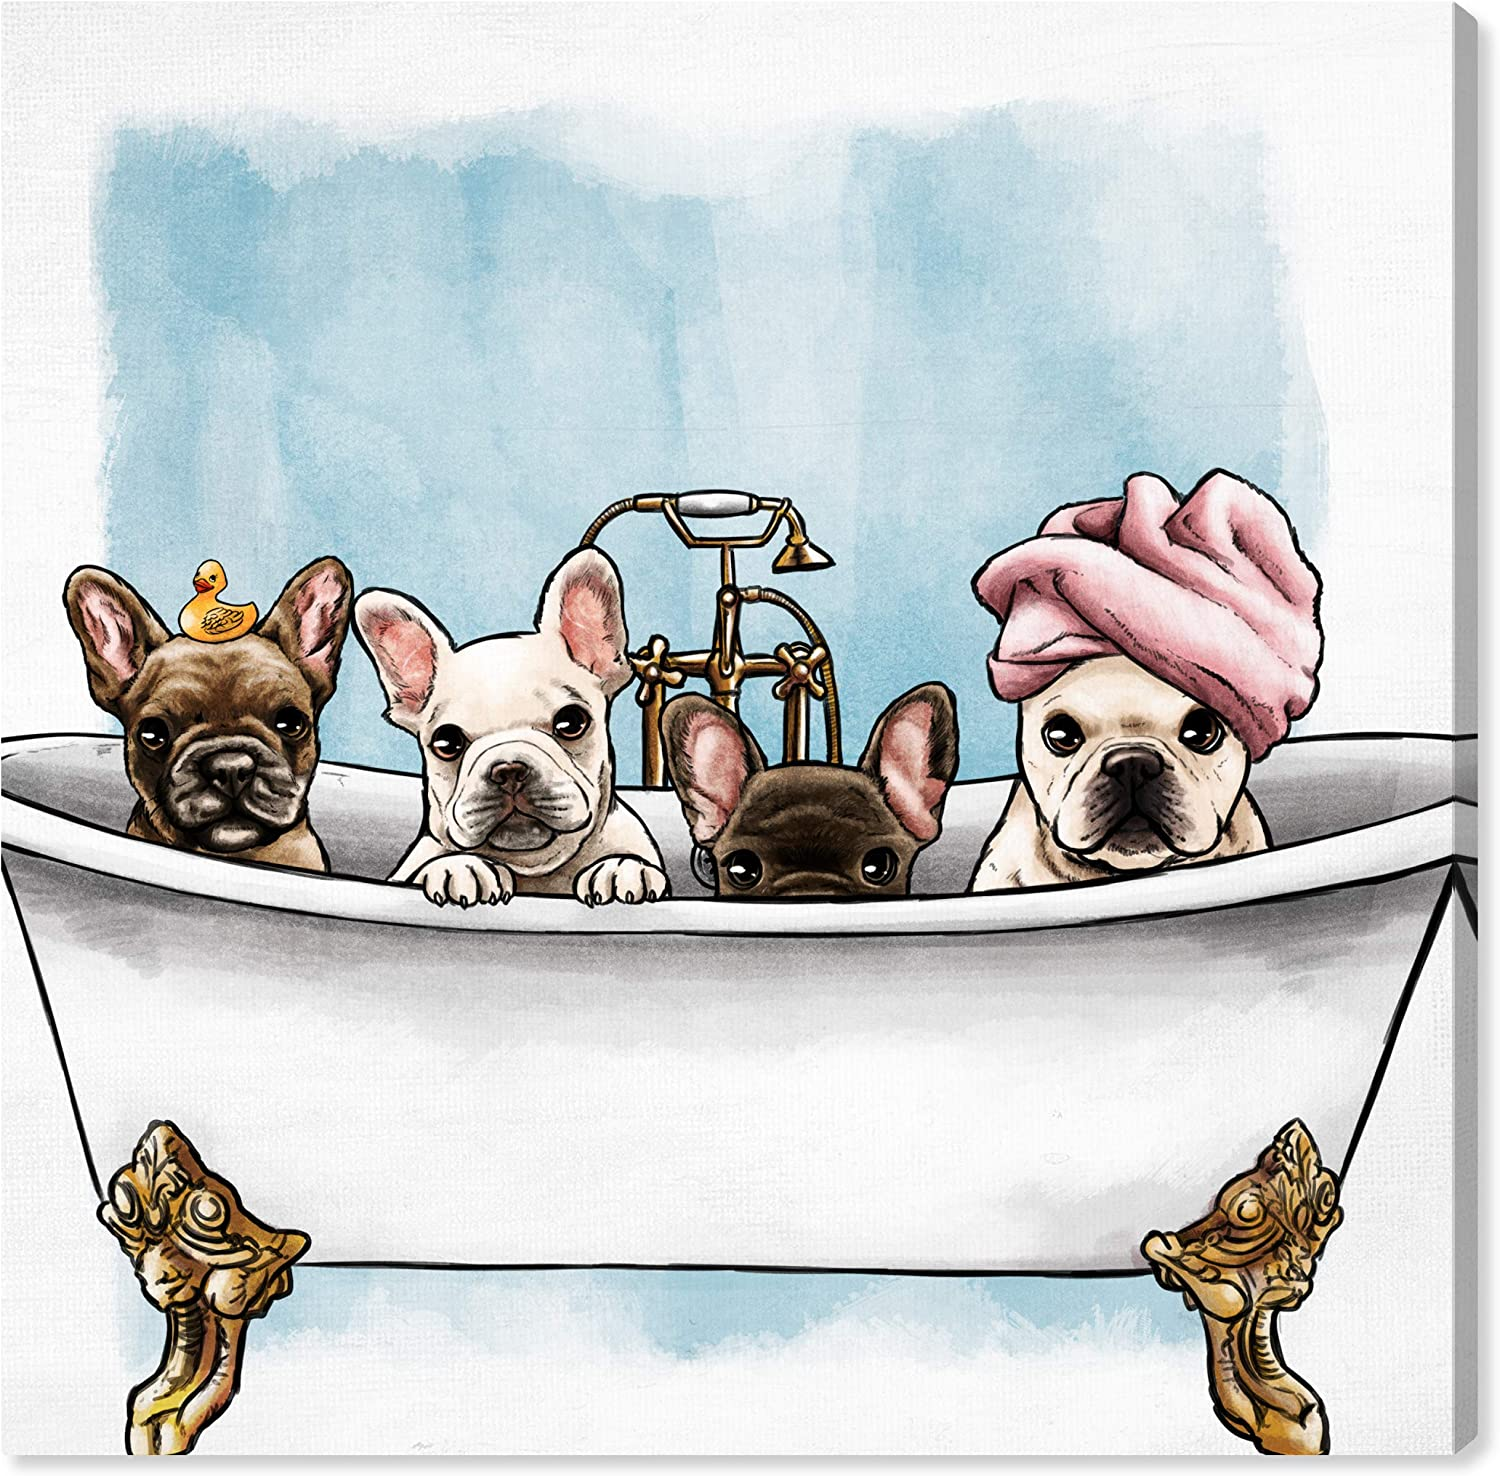 Dealing full price reduction Oliver Gal 'Frenchies In The Tub' Financial sales sale Wall Dogs and Art Puppies